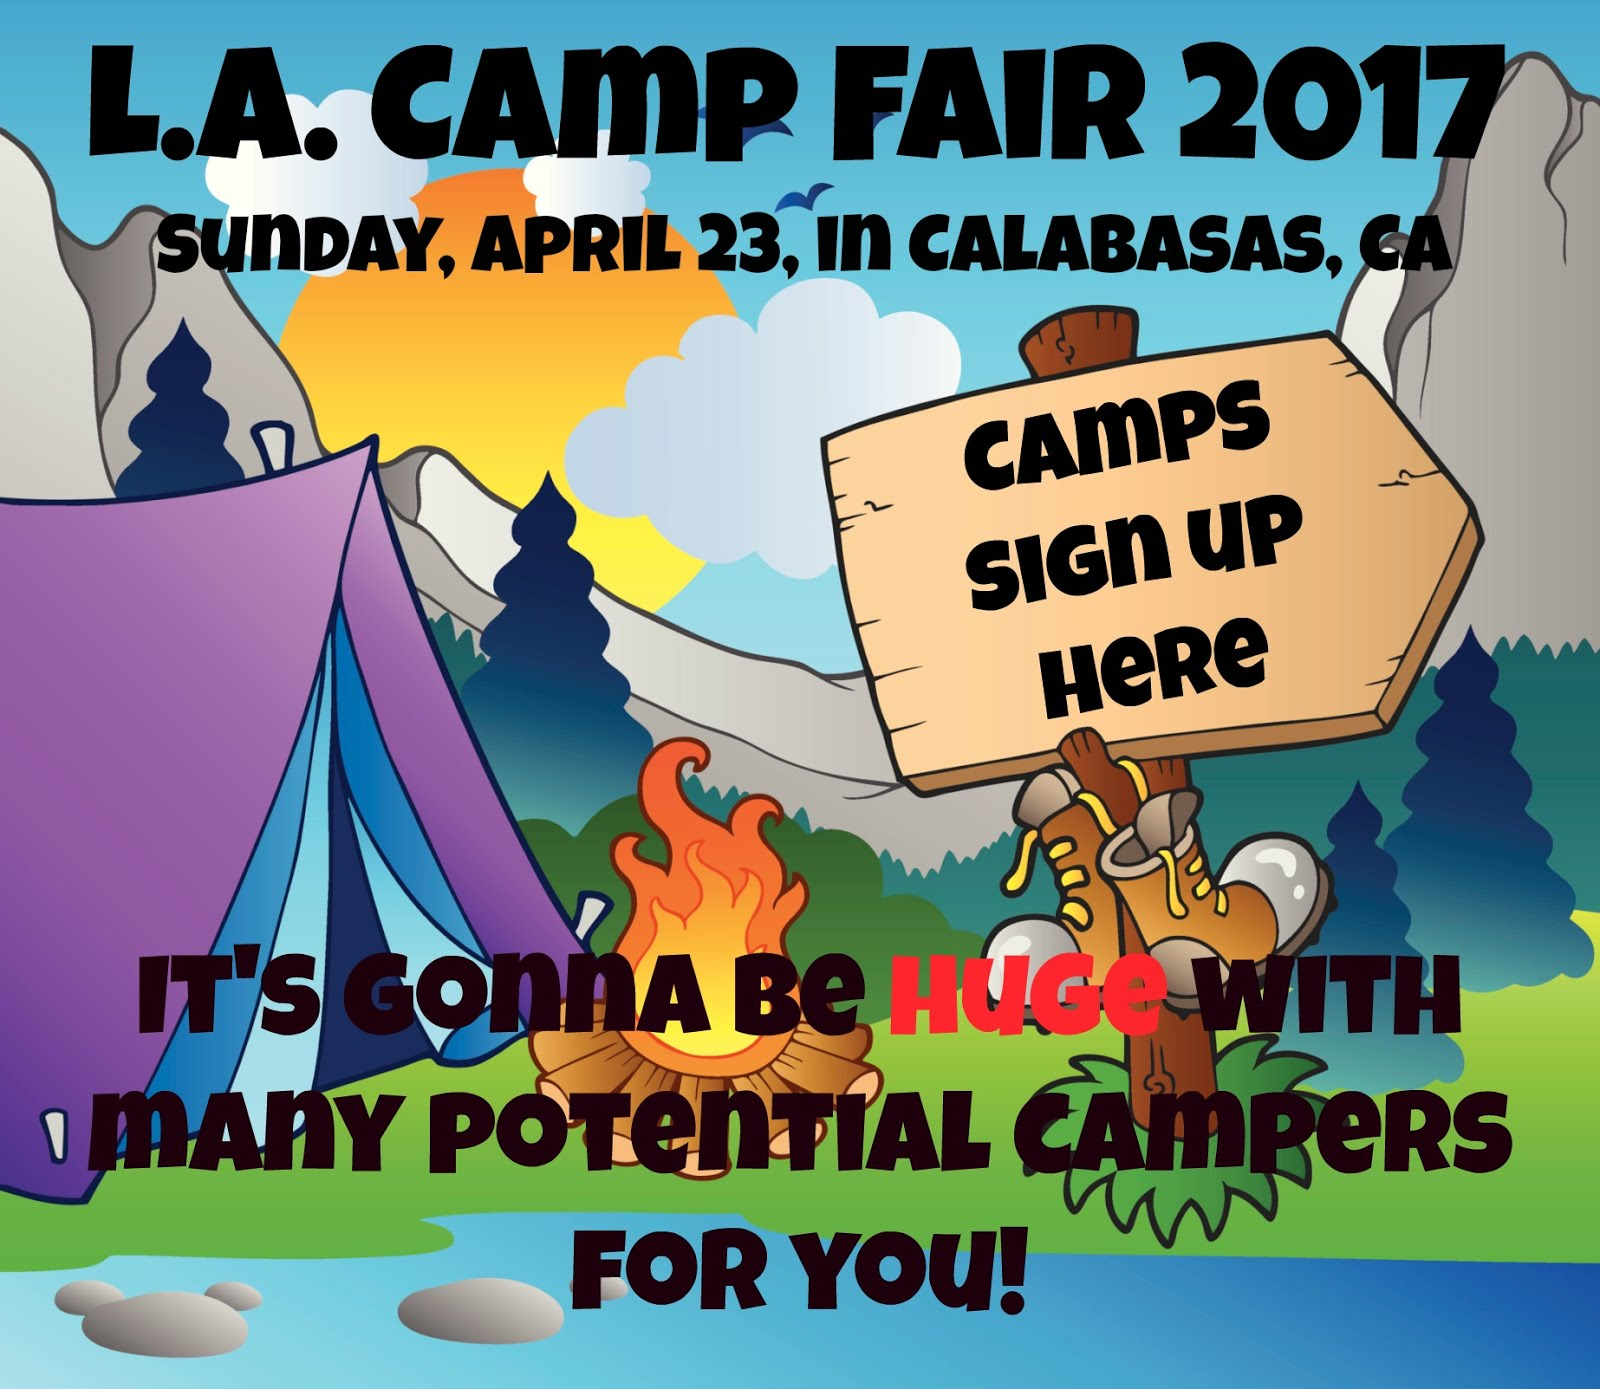 Sign up for the L.A. Summer Camp Fair April 23, 2017 in Calabasas, CA!